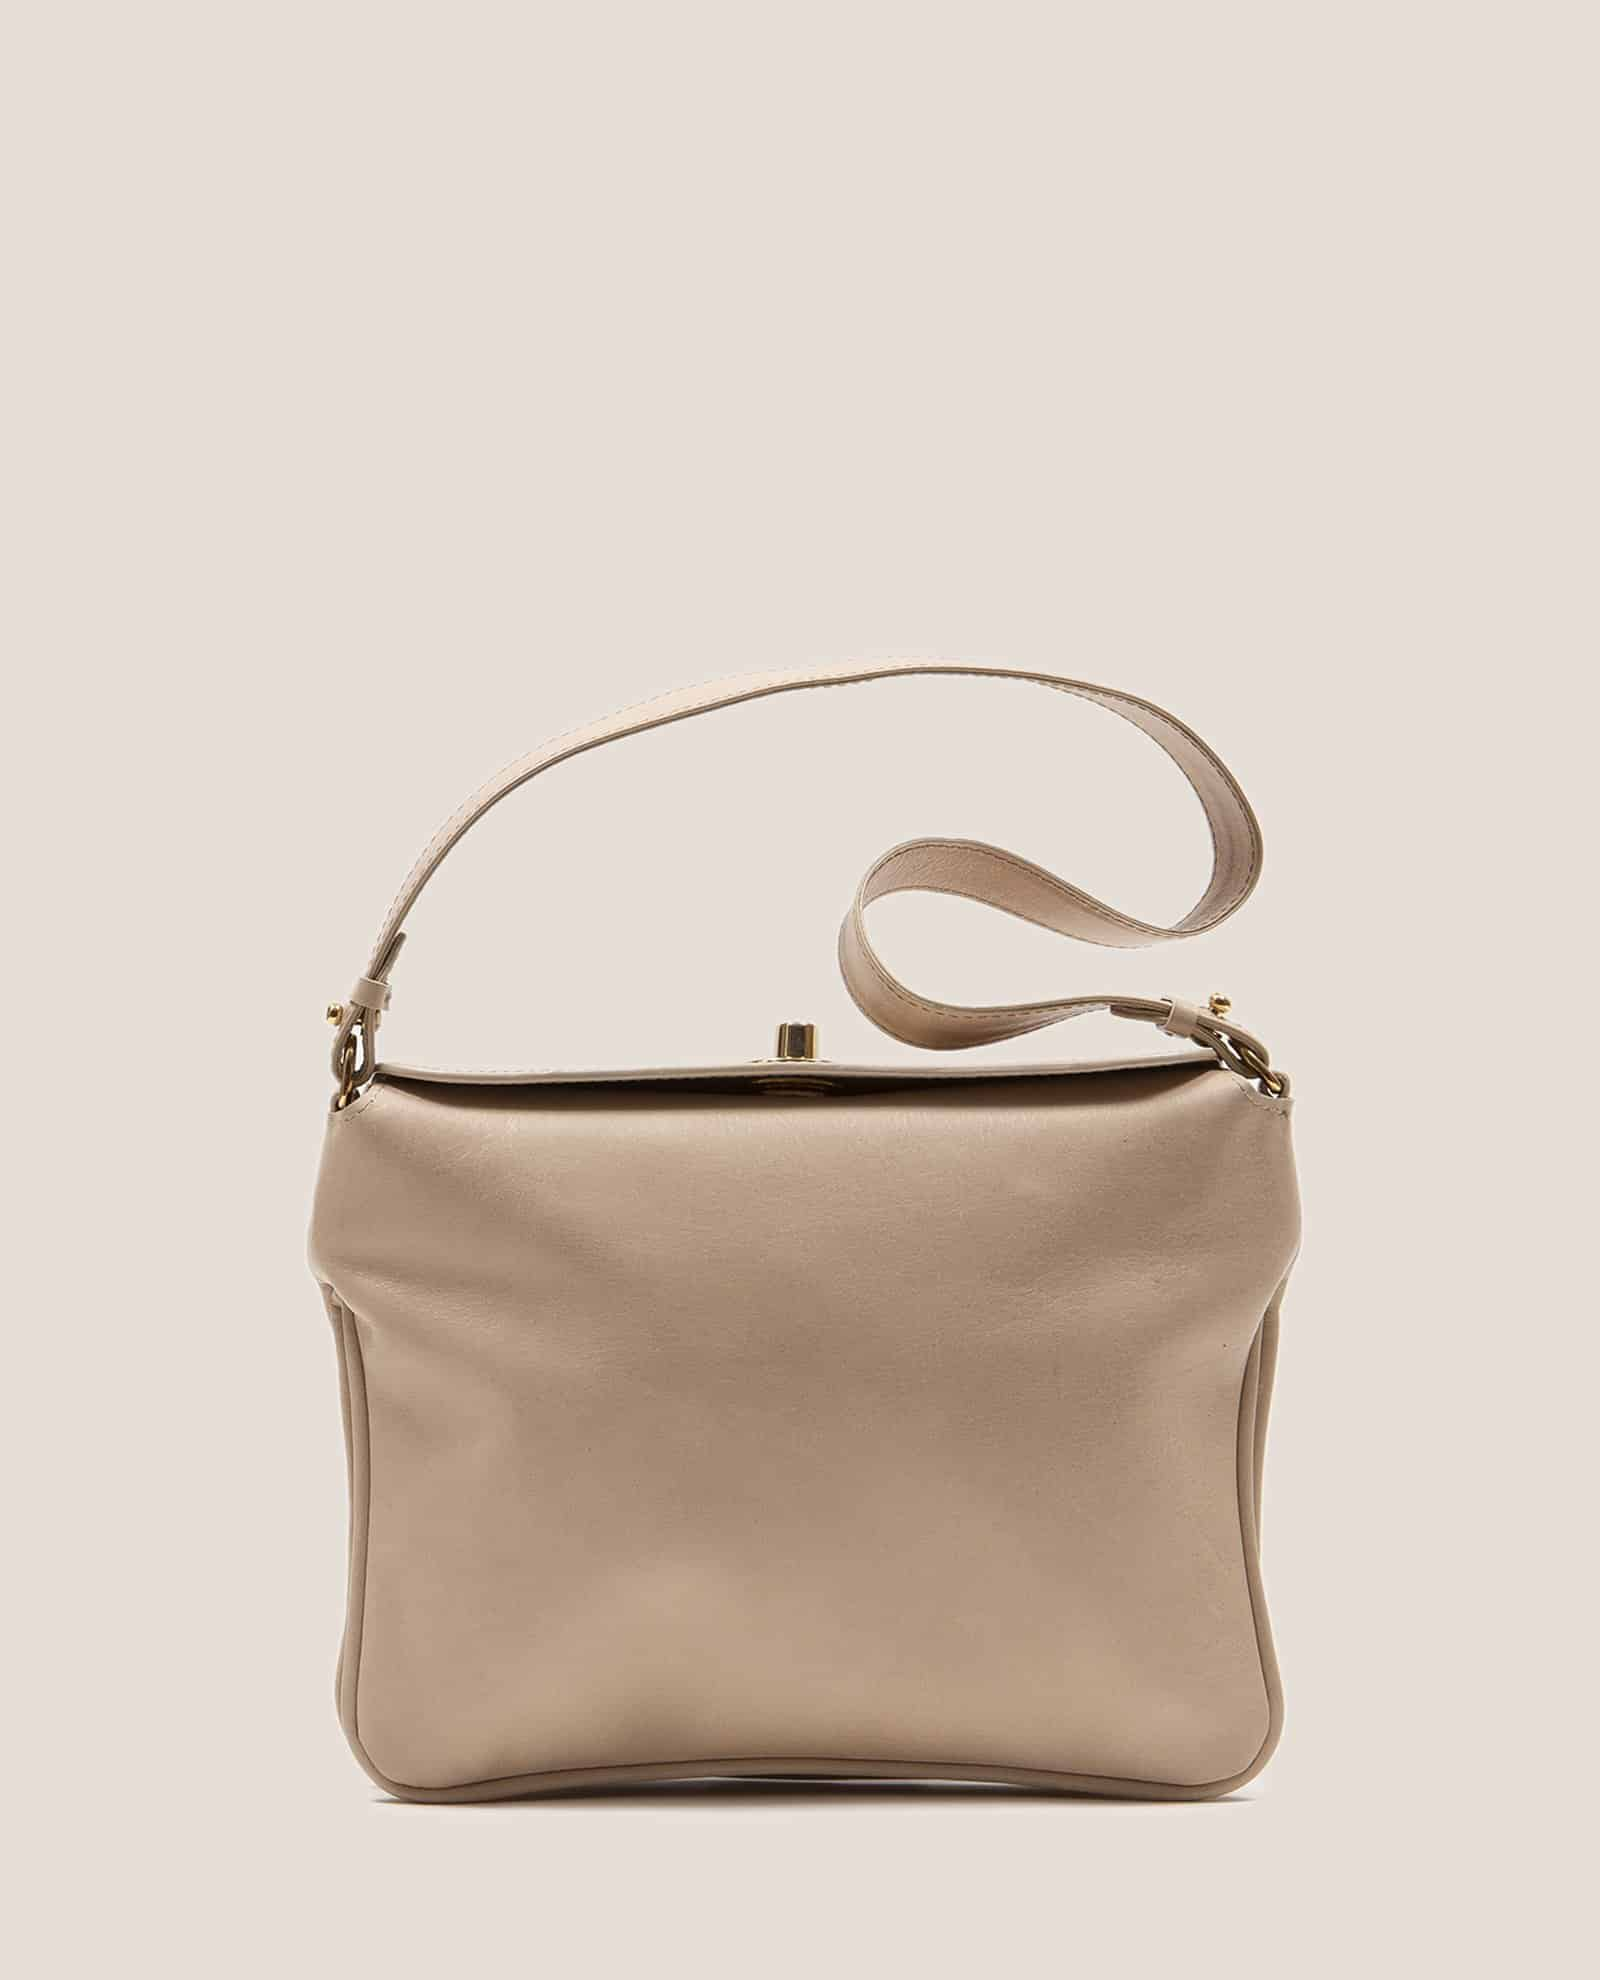 Bolso de mano de Petty Things color beige